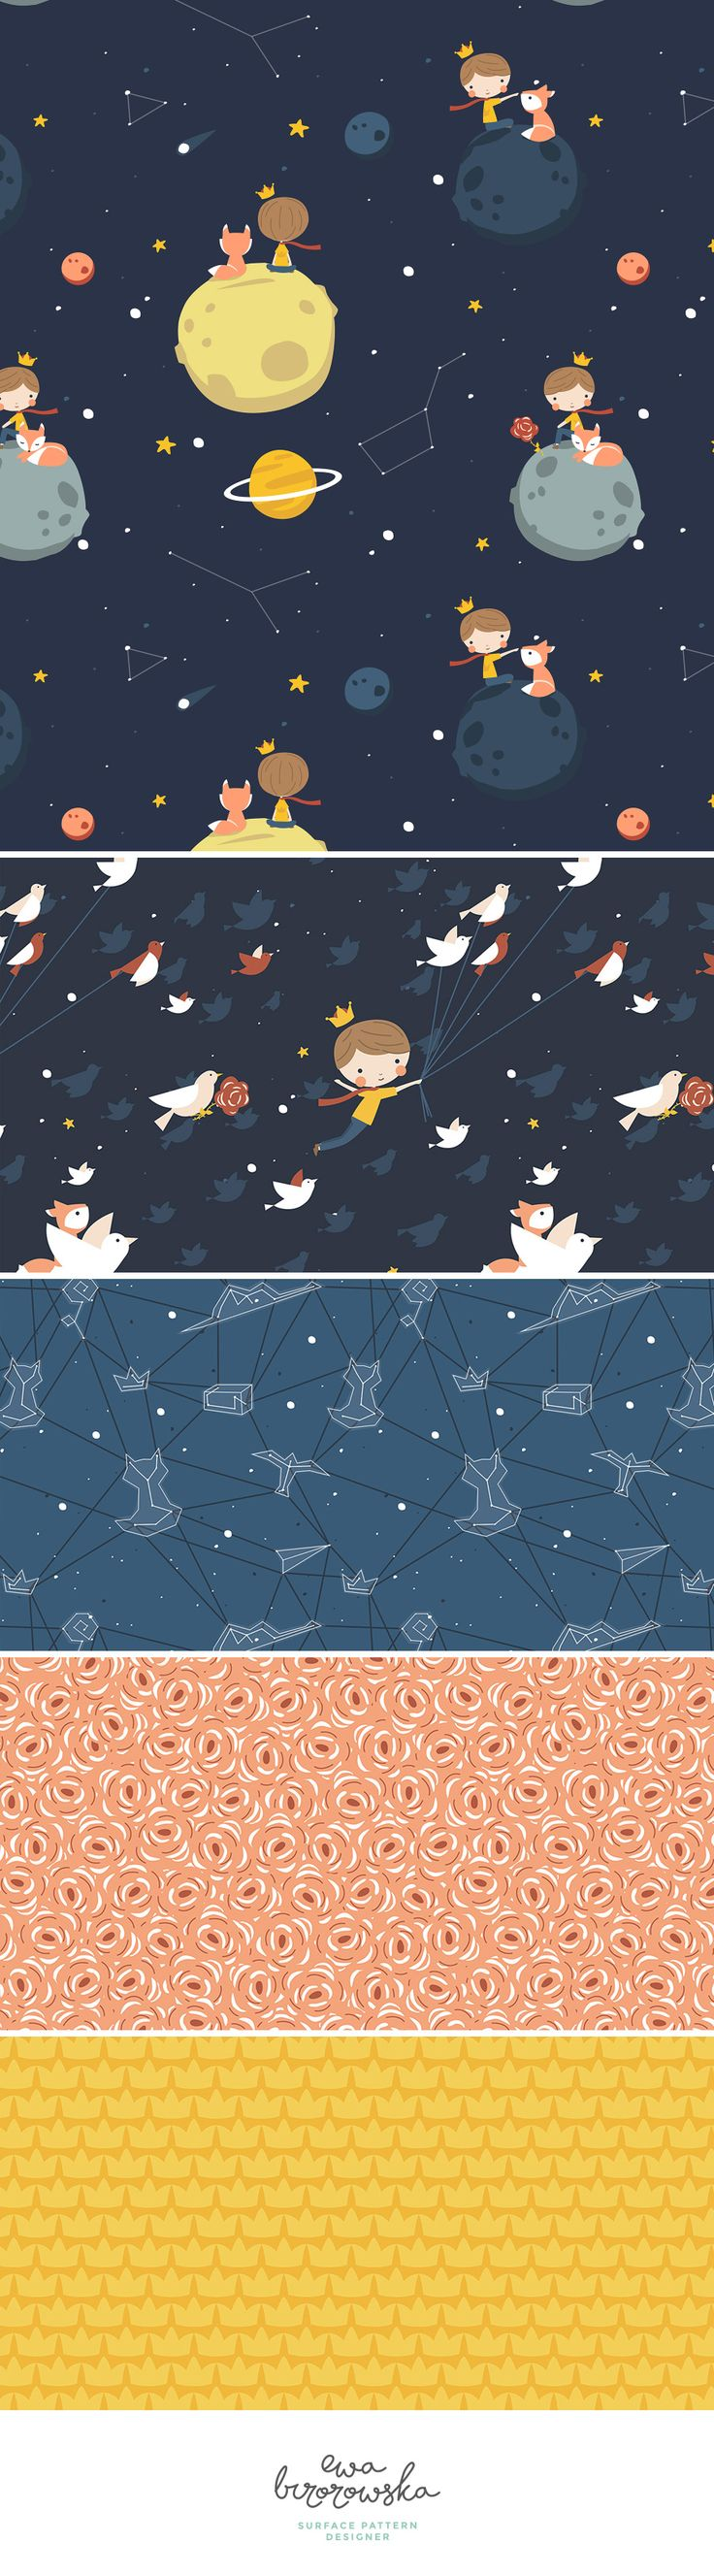 Petit Prince collection is inspired by and dedicated to my lovely little boy - my Petit Prince :) Space pattern design on navy background - perfect for children textile.